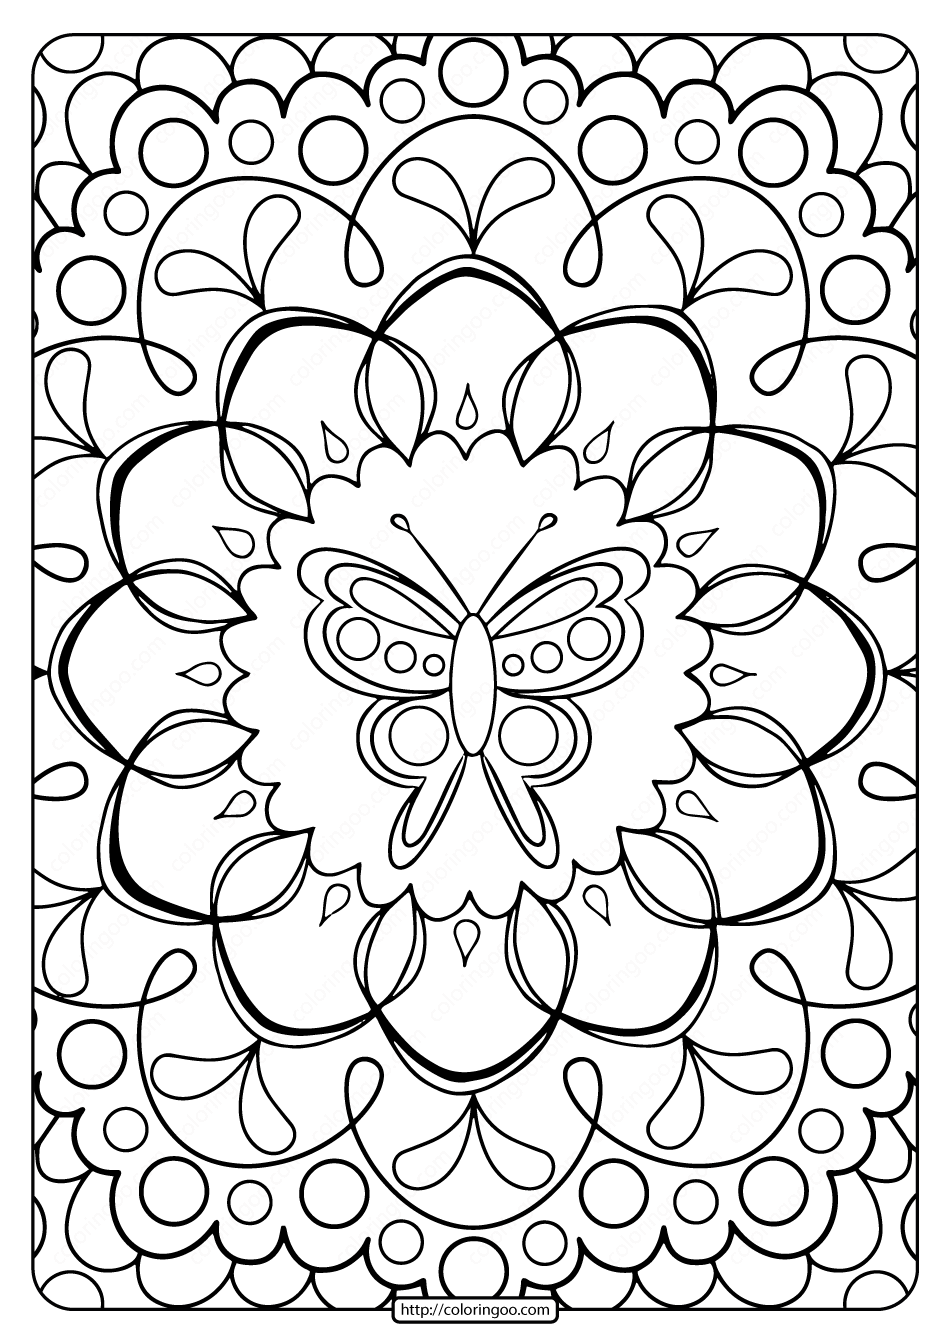 free printable coloring pictures free printable dinosaur coloring pages for kids free printable pictures coloring